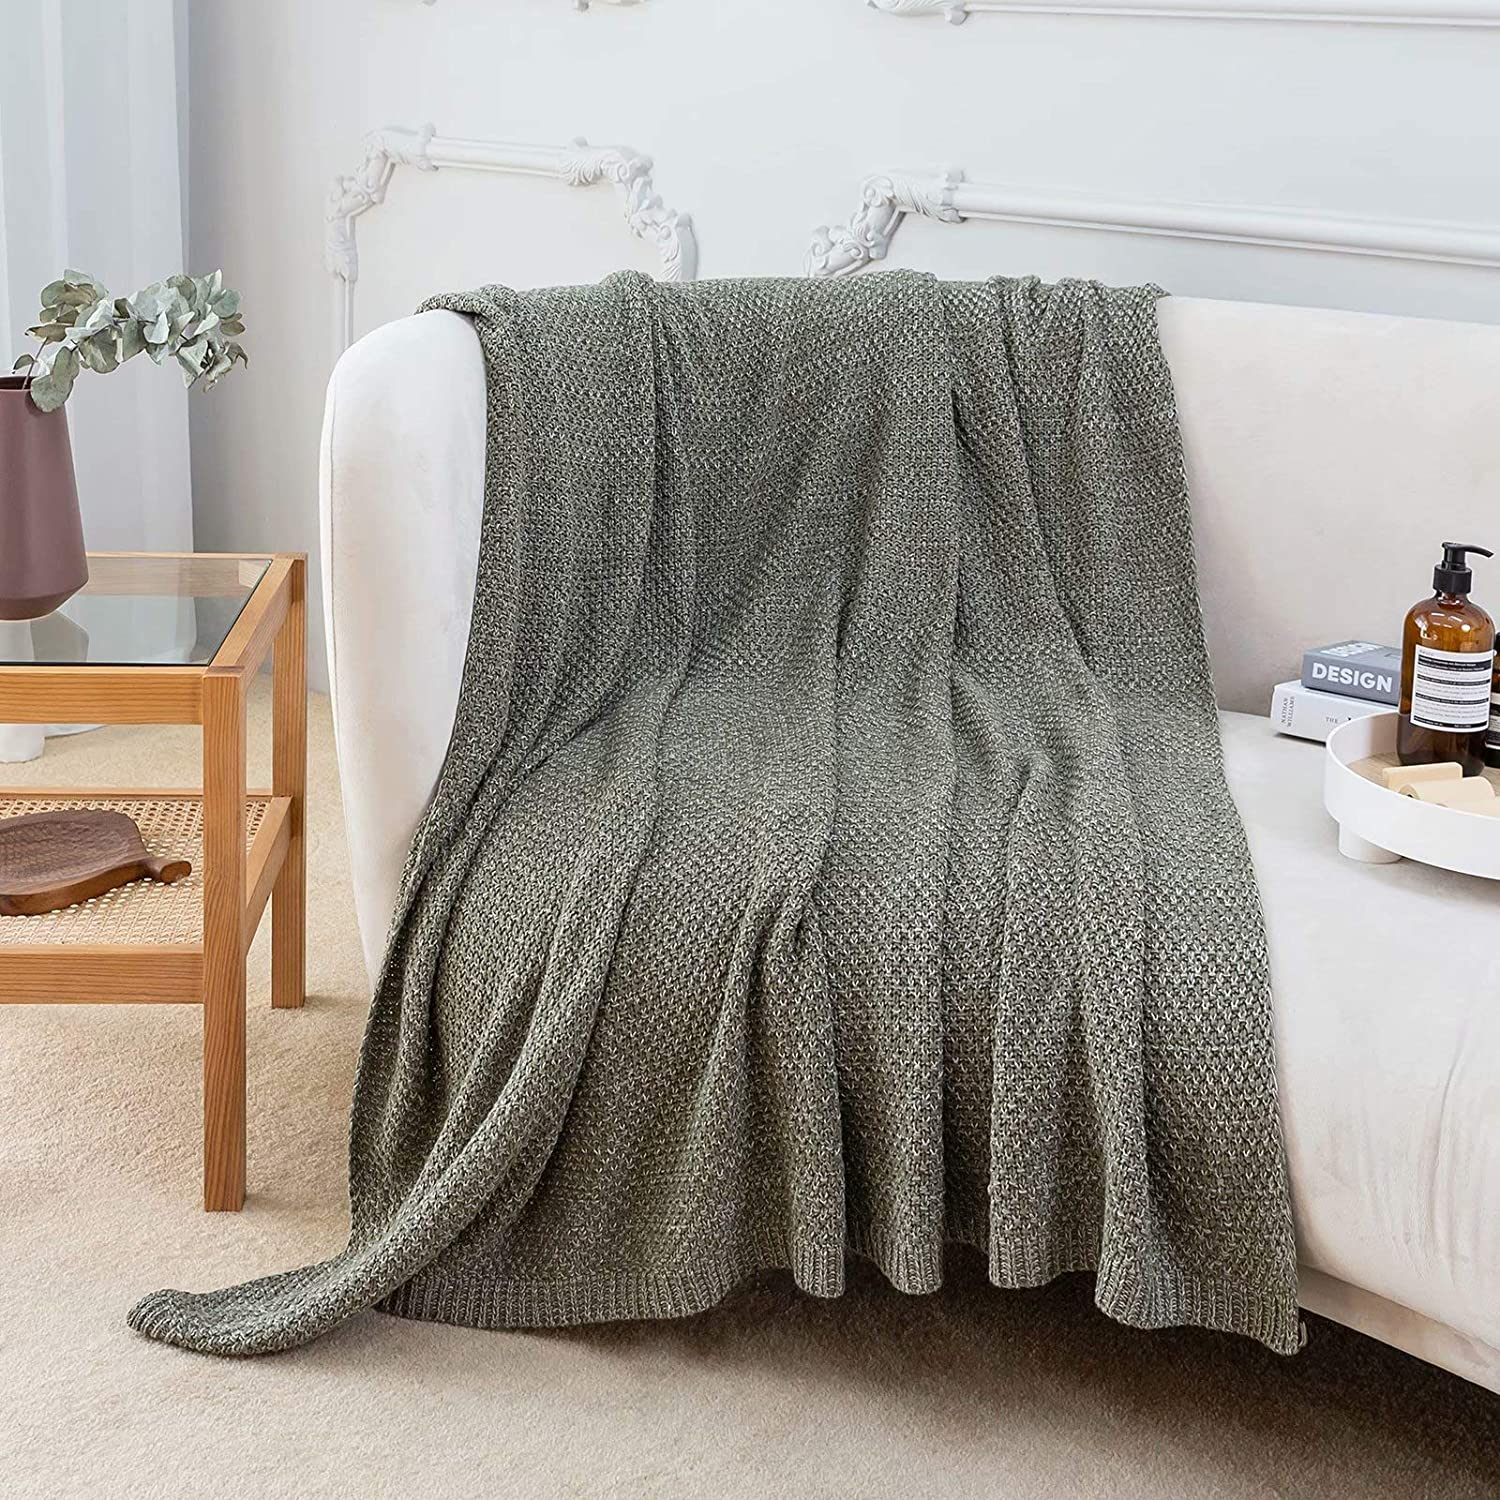 """Ausprophy Cotton Blanket Throw Knitted Throw Warm Cozy Super Soft Lightweight for Bed Sofa Chair Couch Home Decor 60"""" 80"""" Throw Olive"""